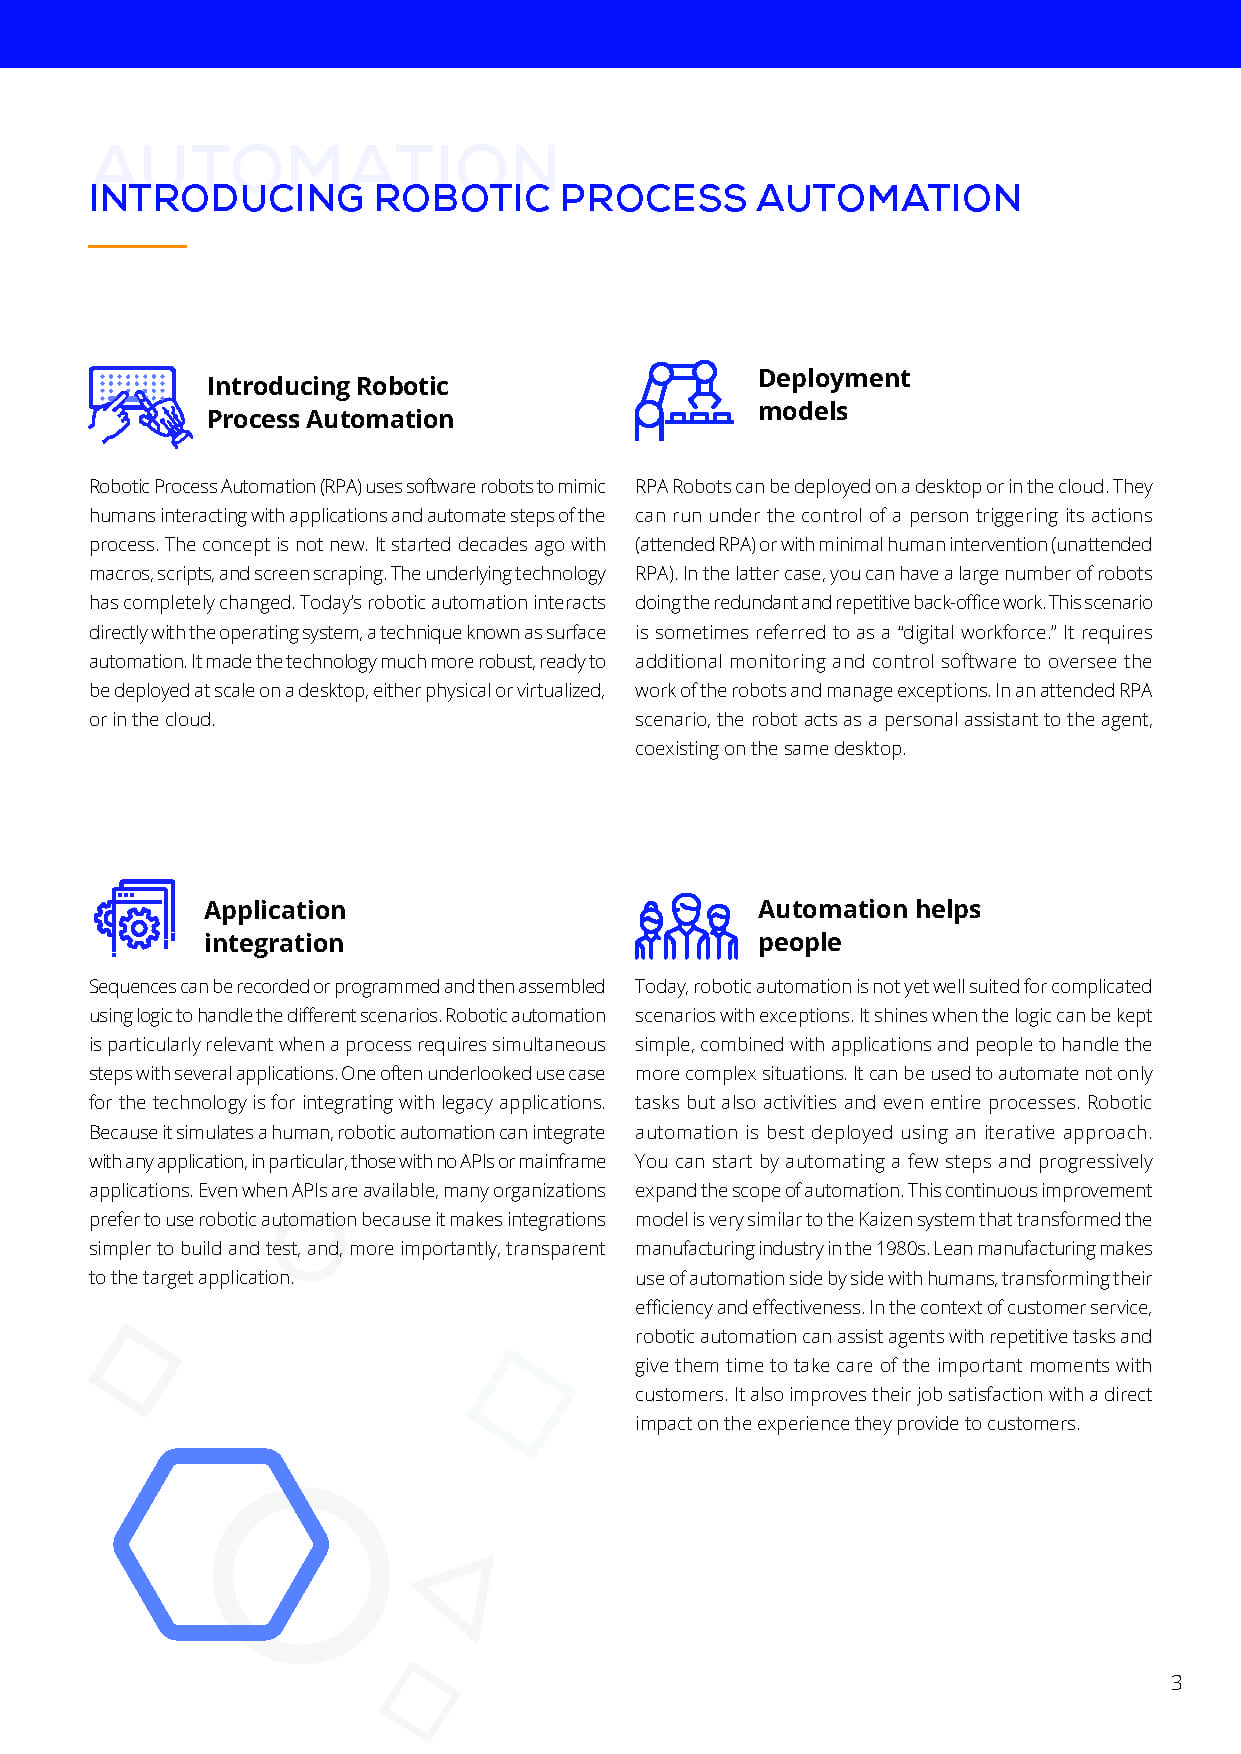 Whitepaper-The-Rise-of-Customer-Service-Robotic-Automation (1)_Page_03